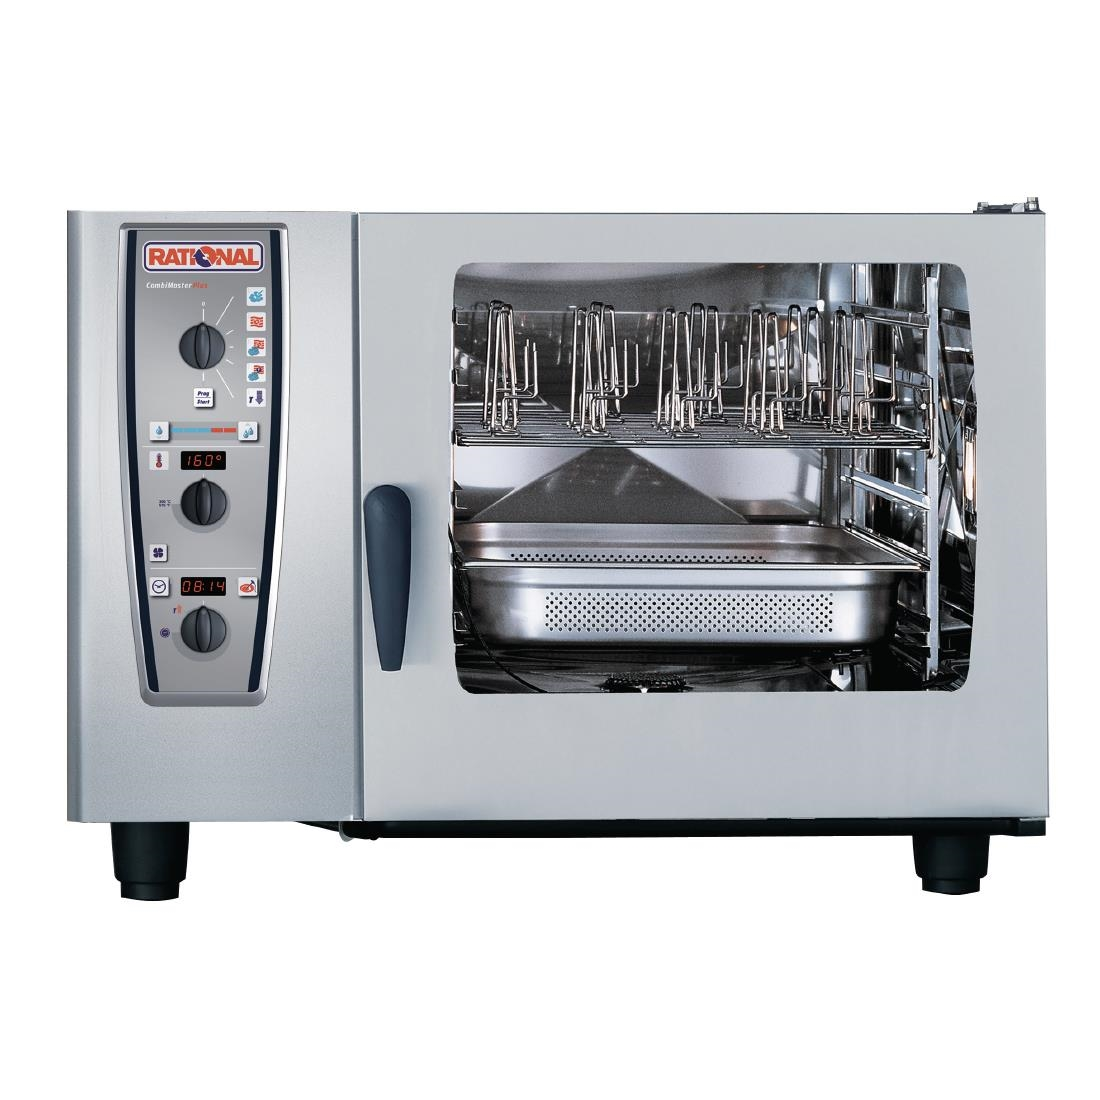 Rational Combimaster Oven Plus Oven 62 Electric CMP62G